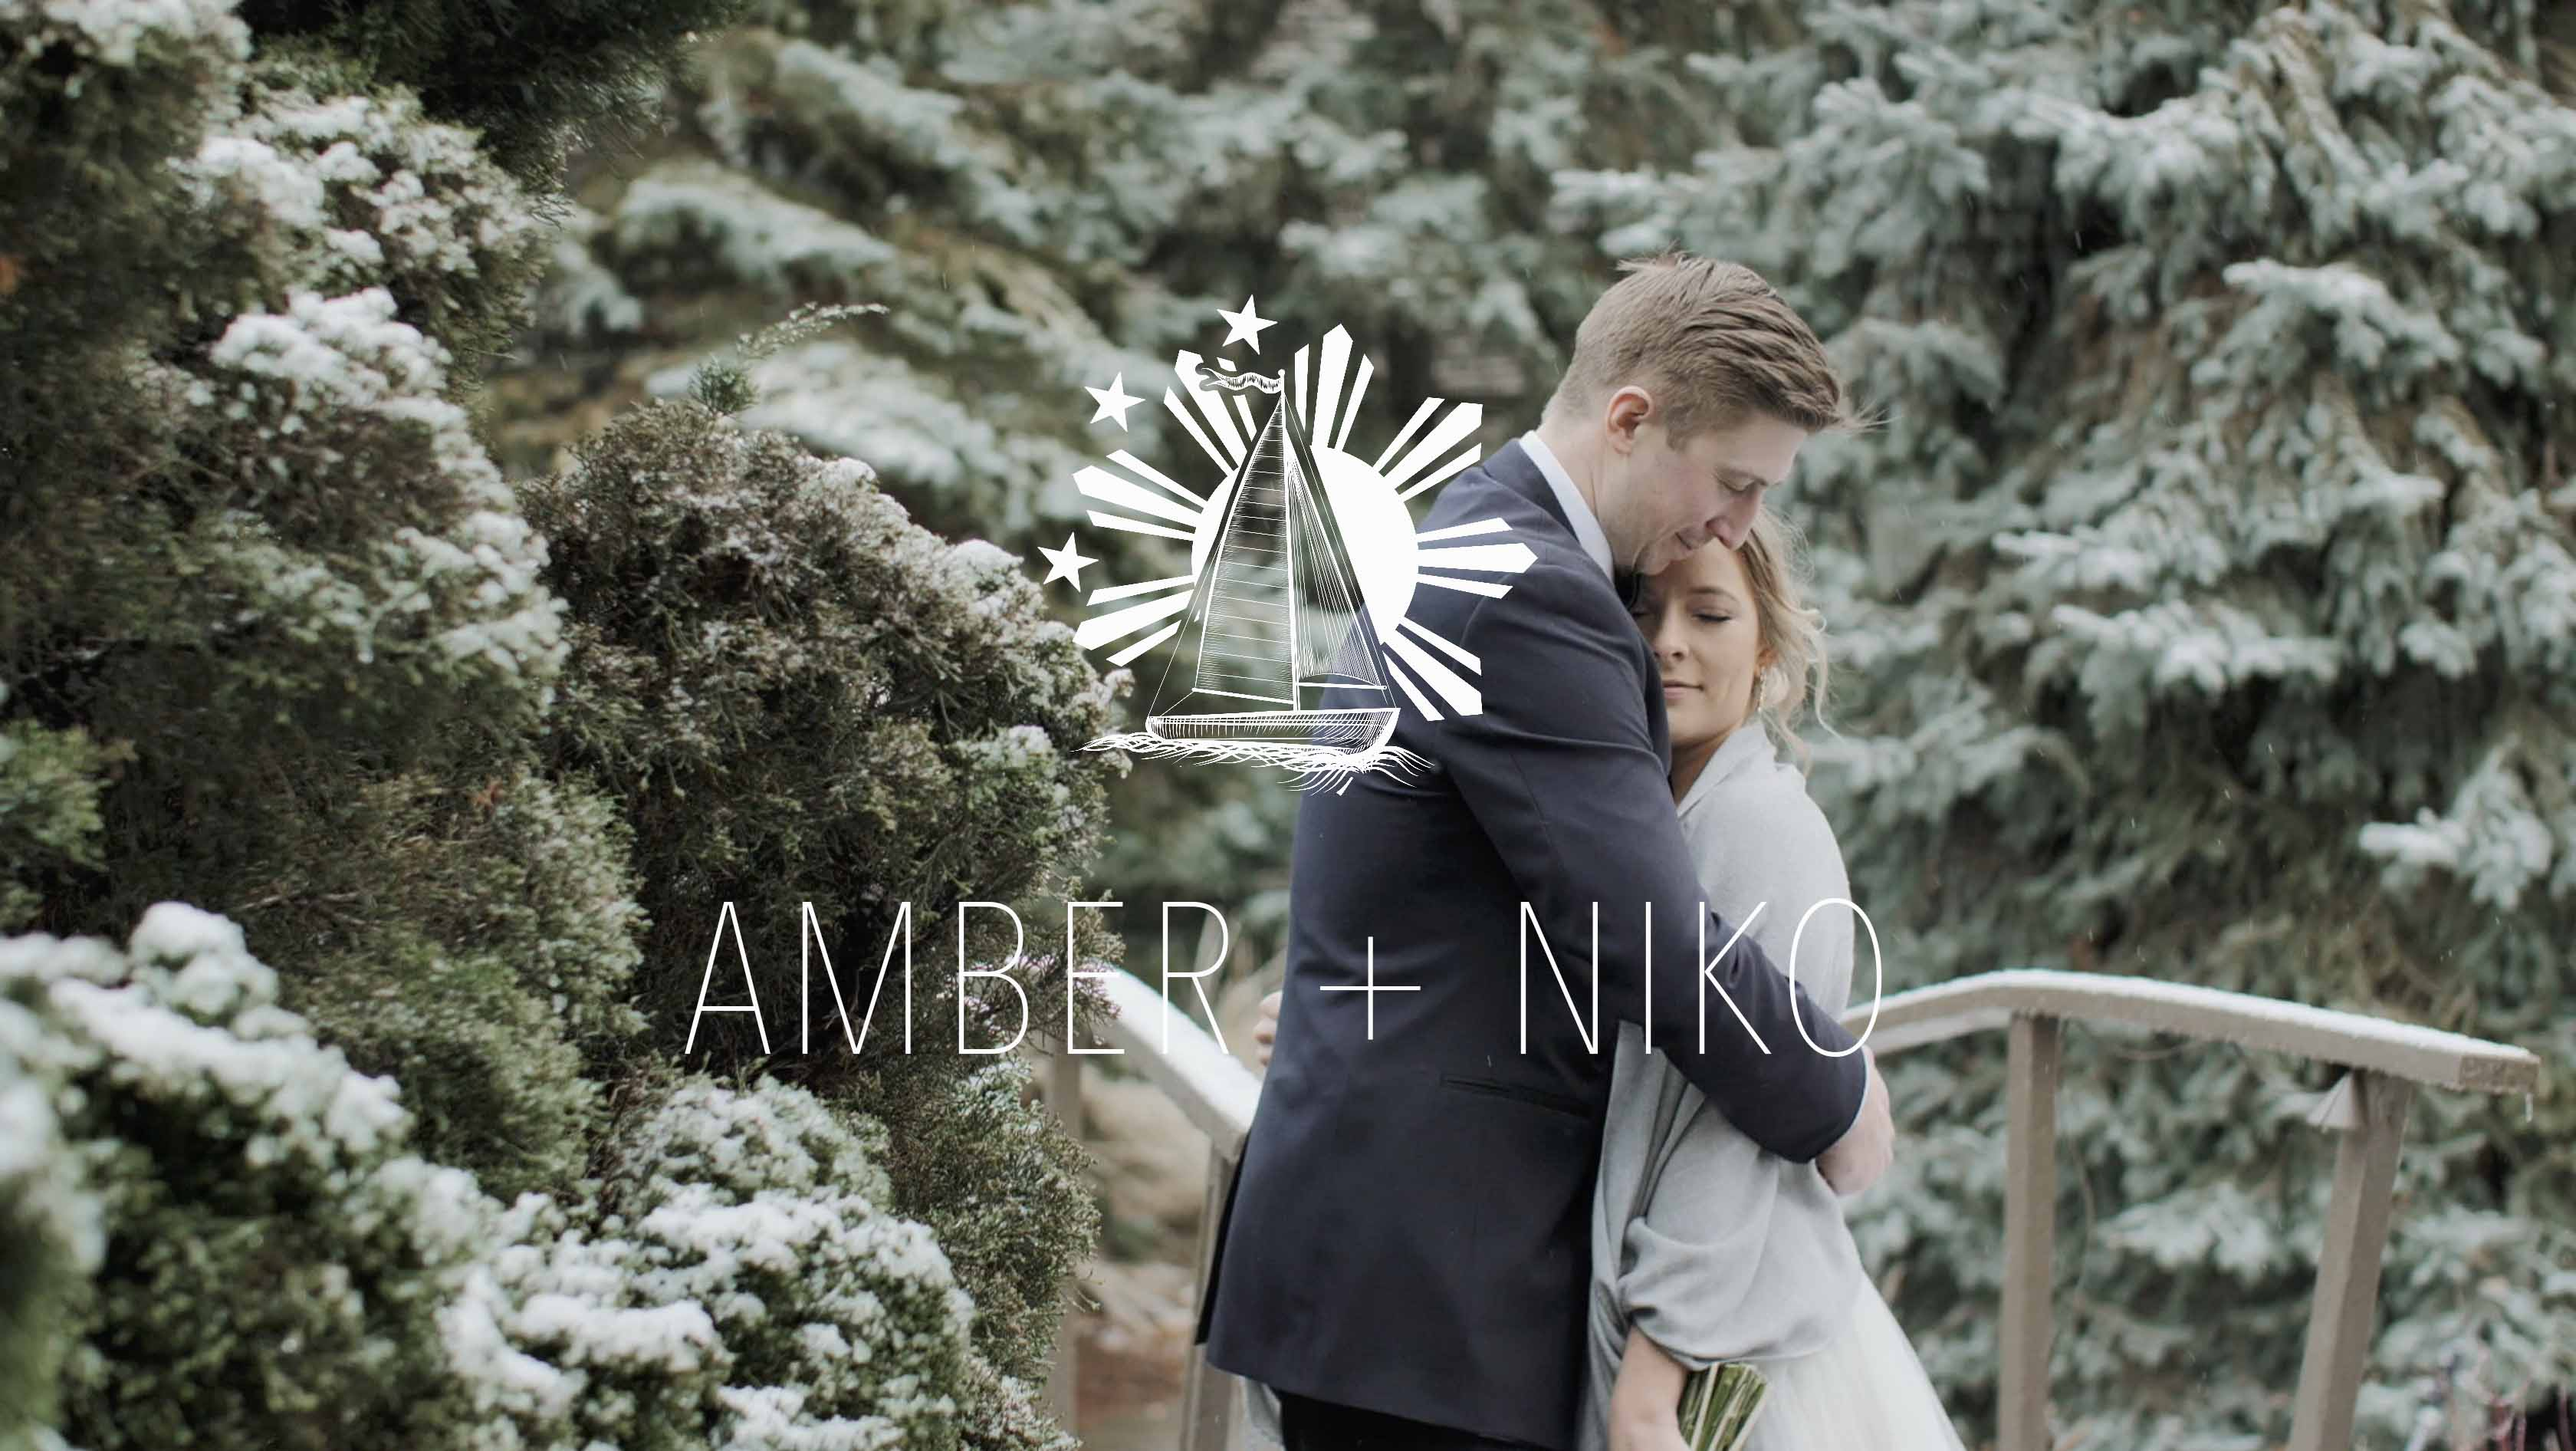 Amber + Niko | St. Catharines, Canada | White Oaks Resort